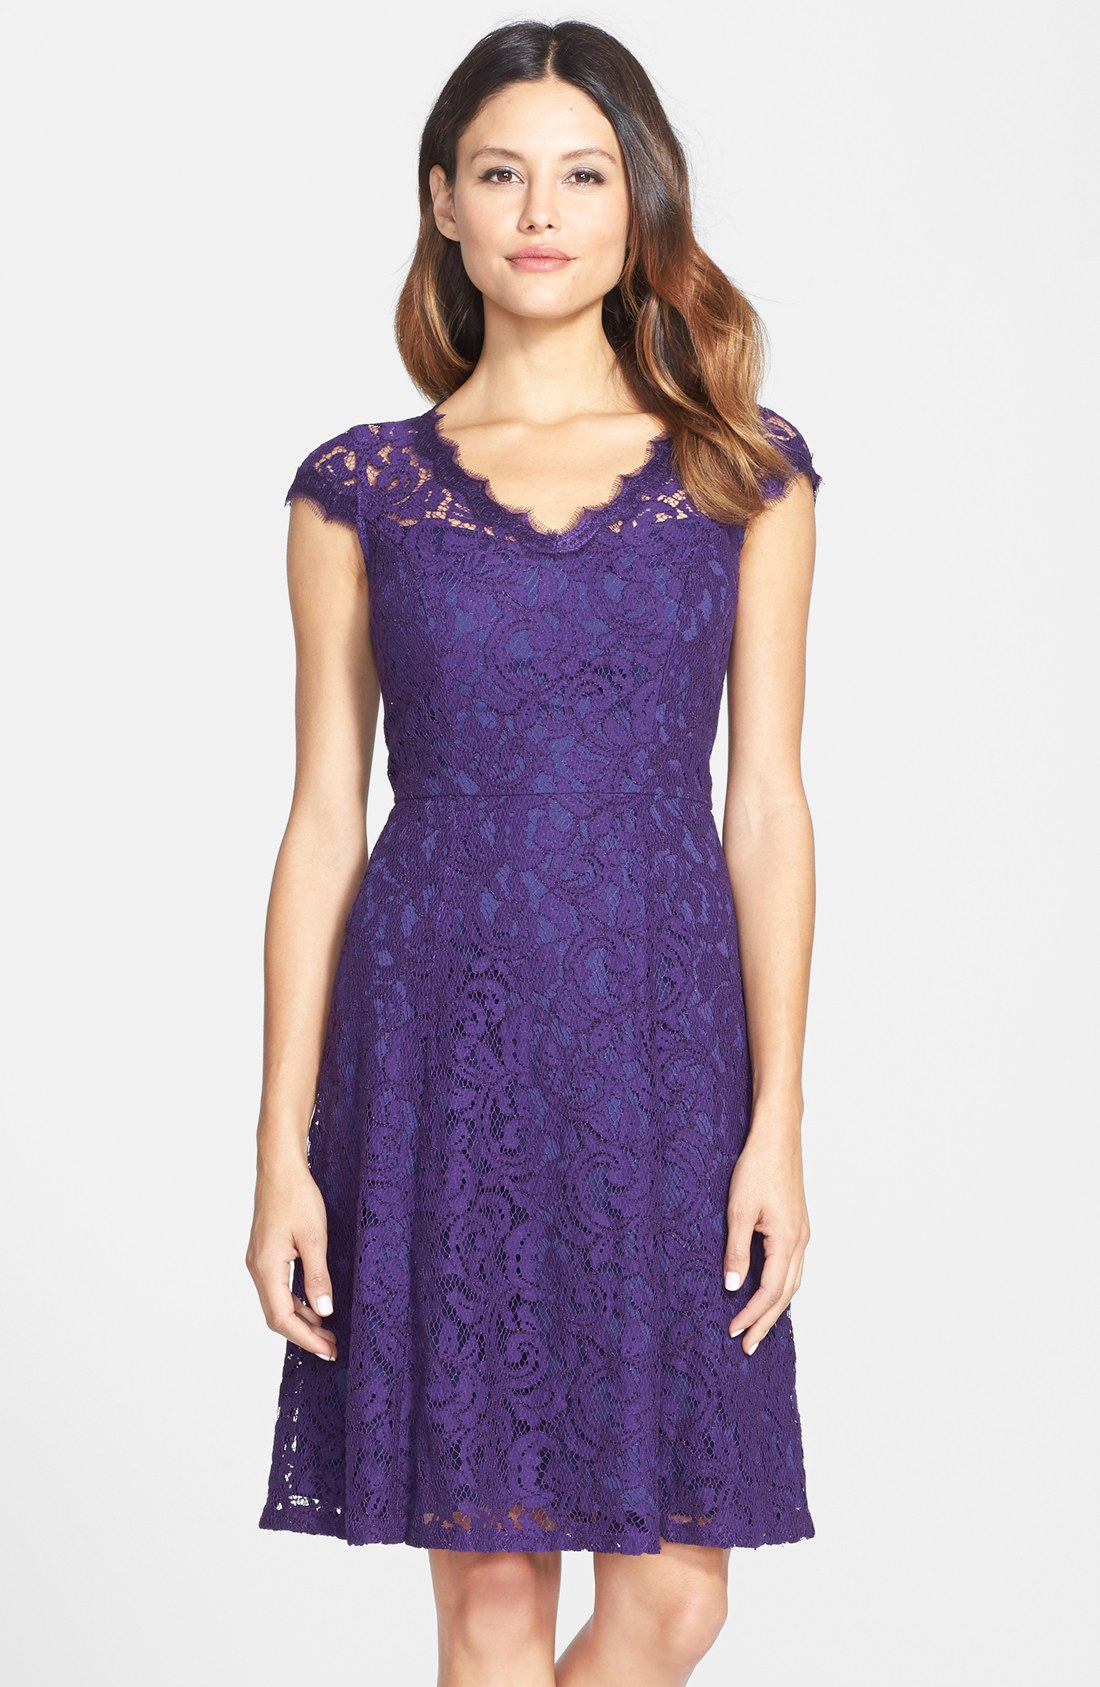 Adrianna Papell Lace Fit Amp Flare Dress Regular Amp Petite